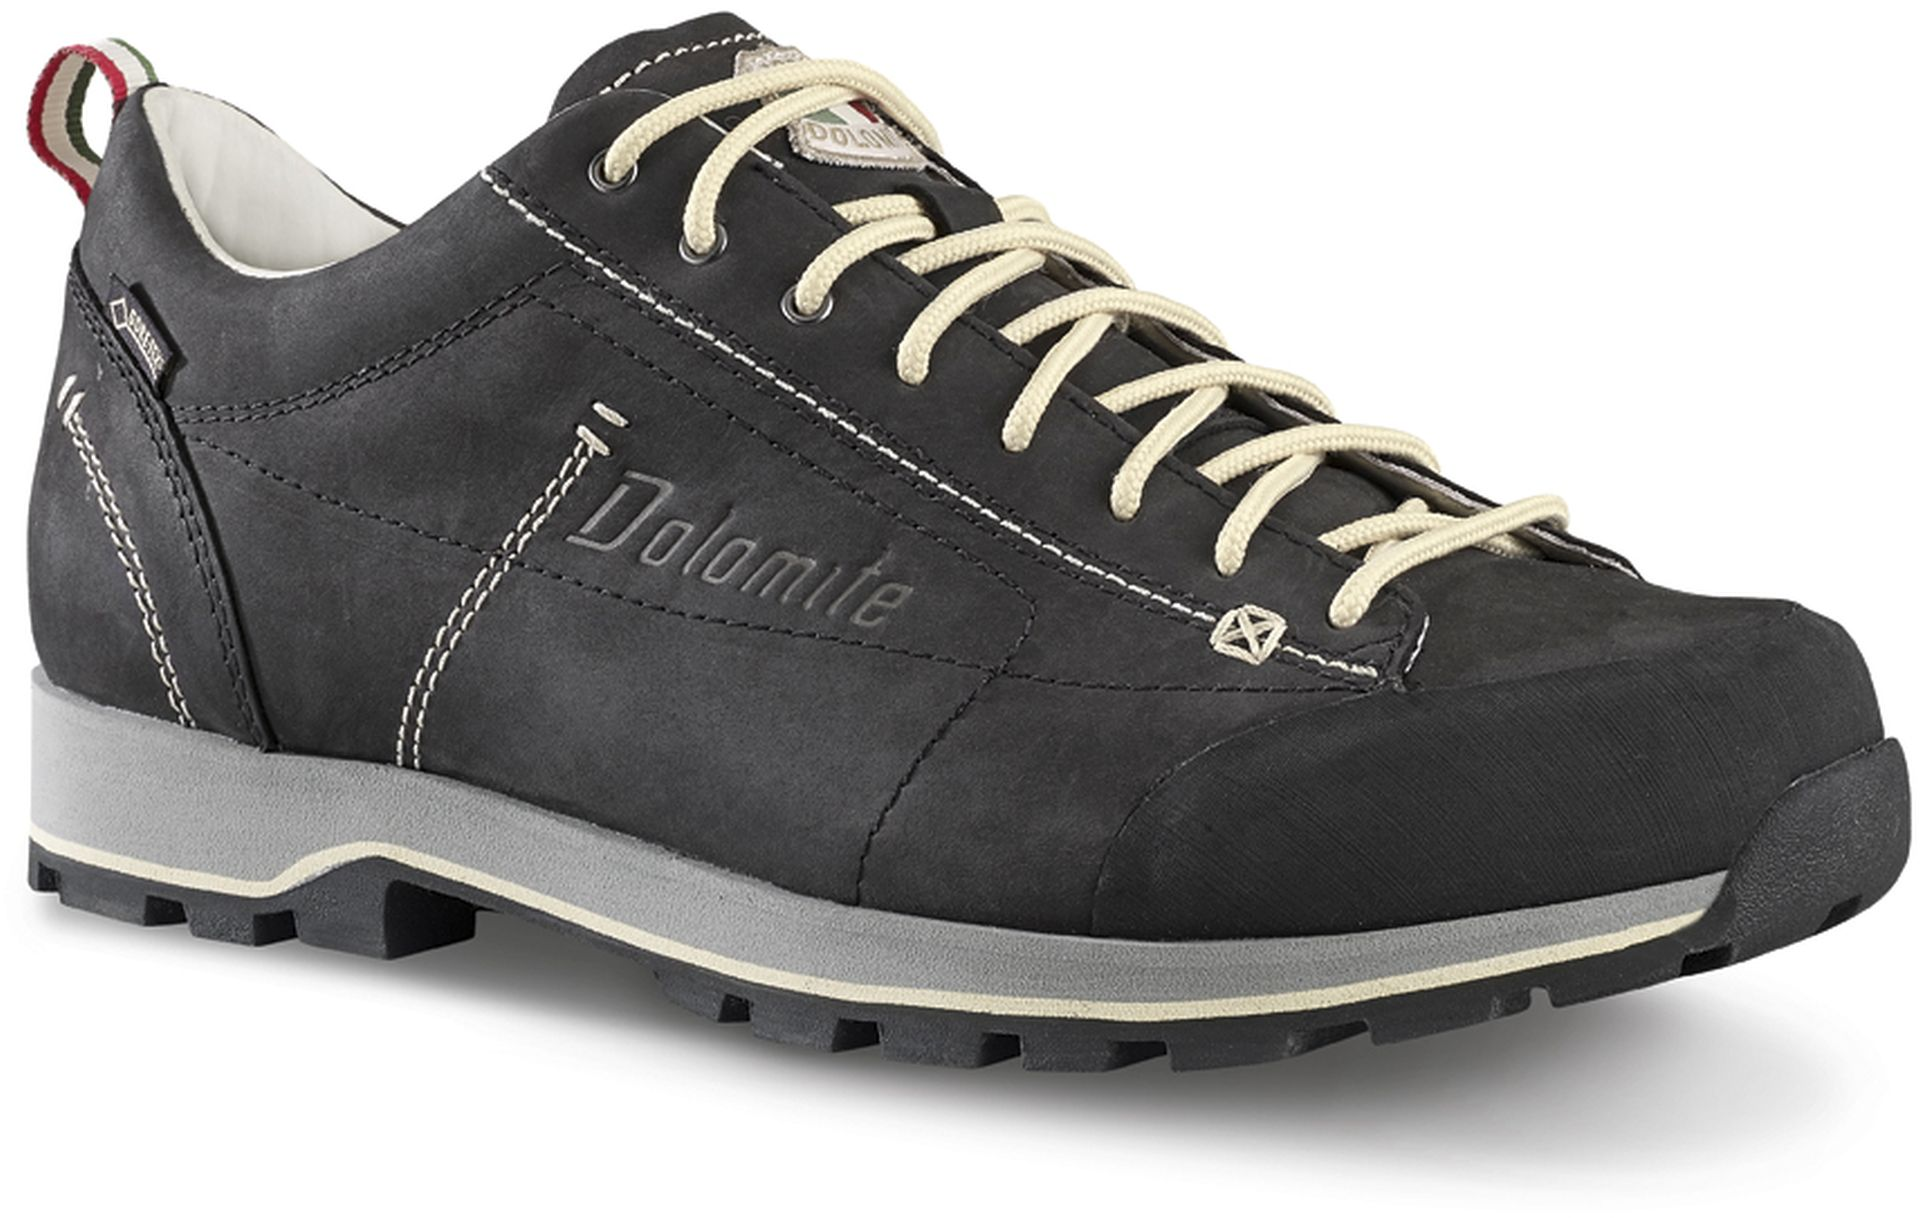 affordable price new products best website Dolomite CinquantaQuattro Low FG GTX, Ohne Versandkosten ...